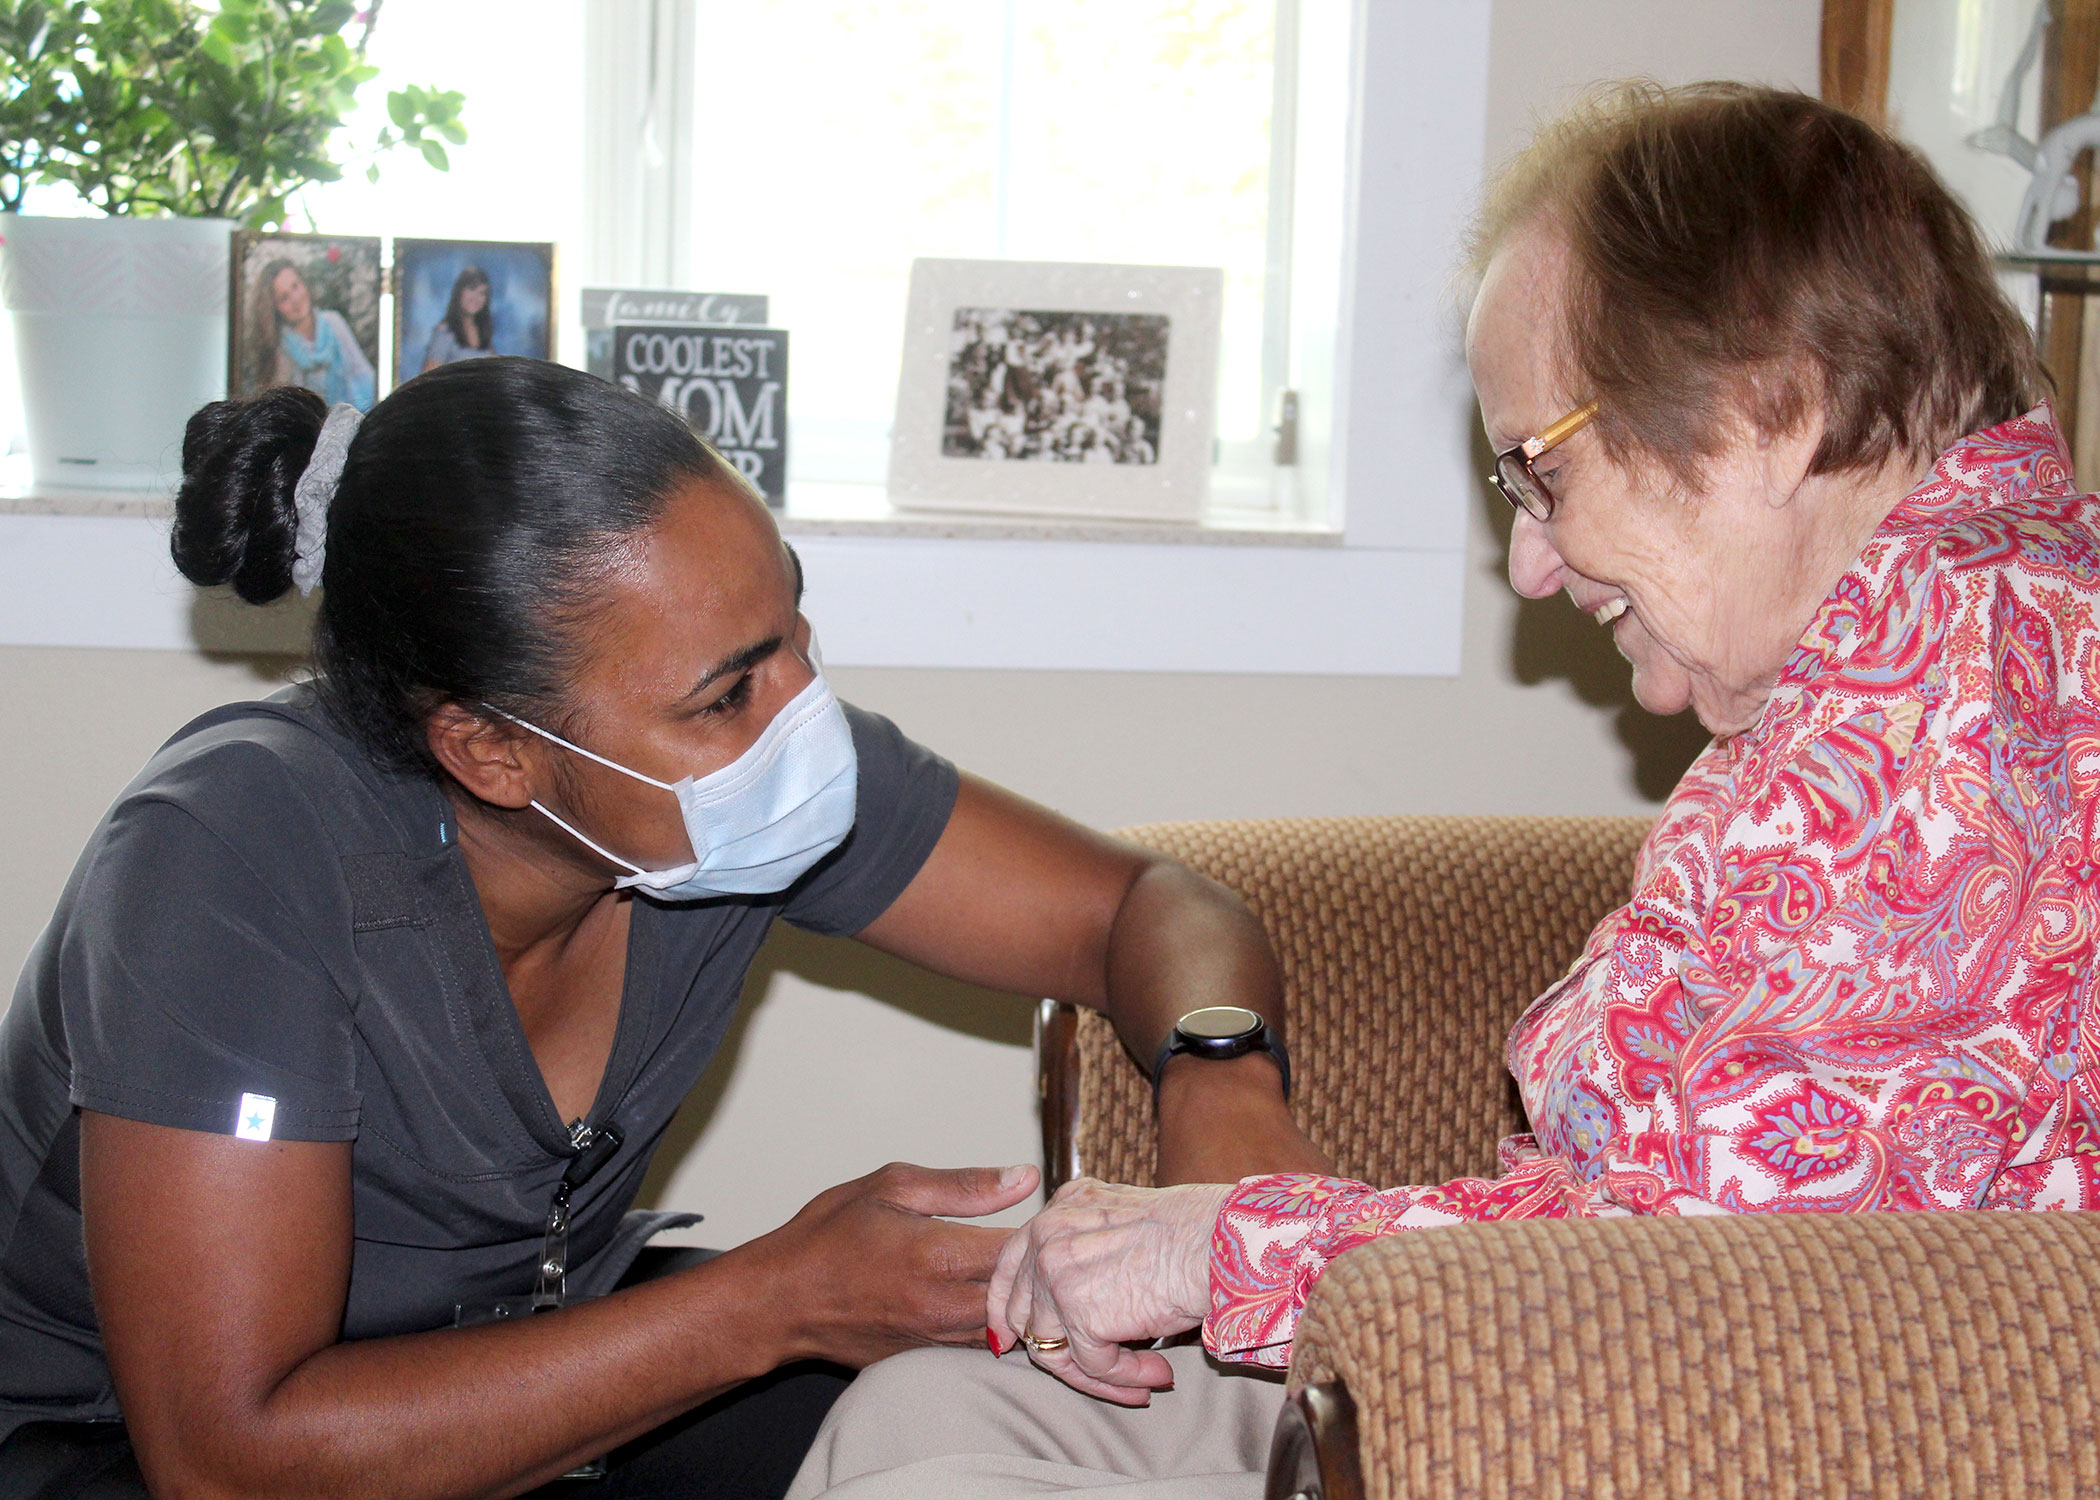 Female CNA with face mask holds the hand of a female memory care resident who is smiling with a red shirt